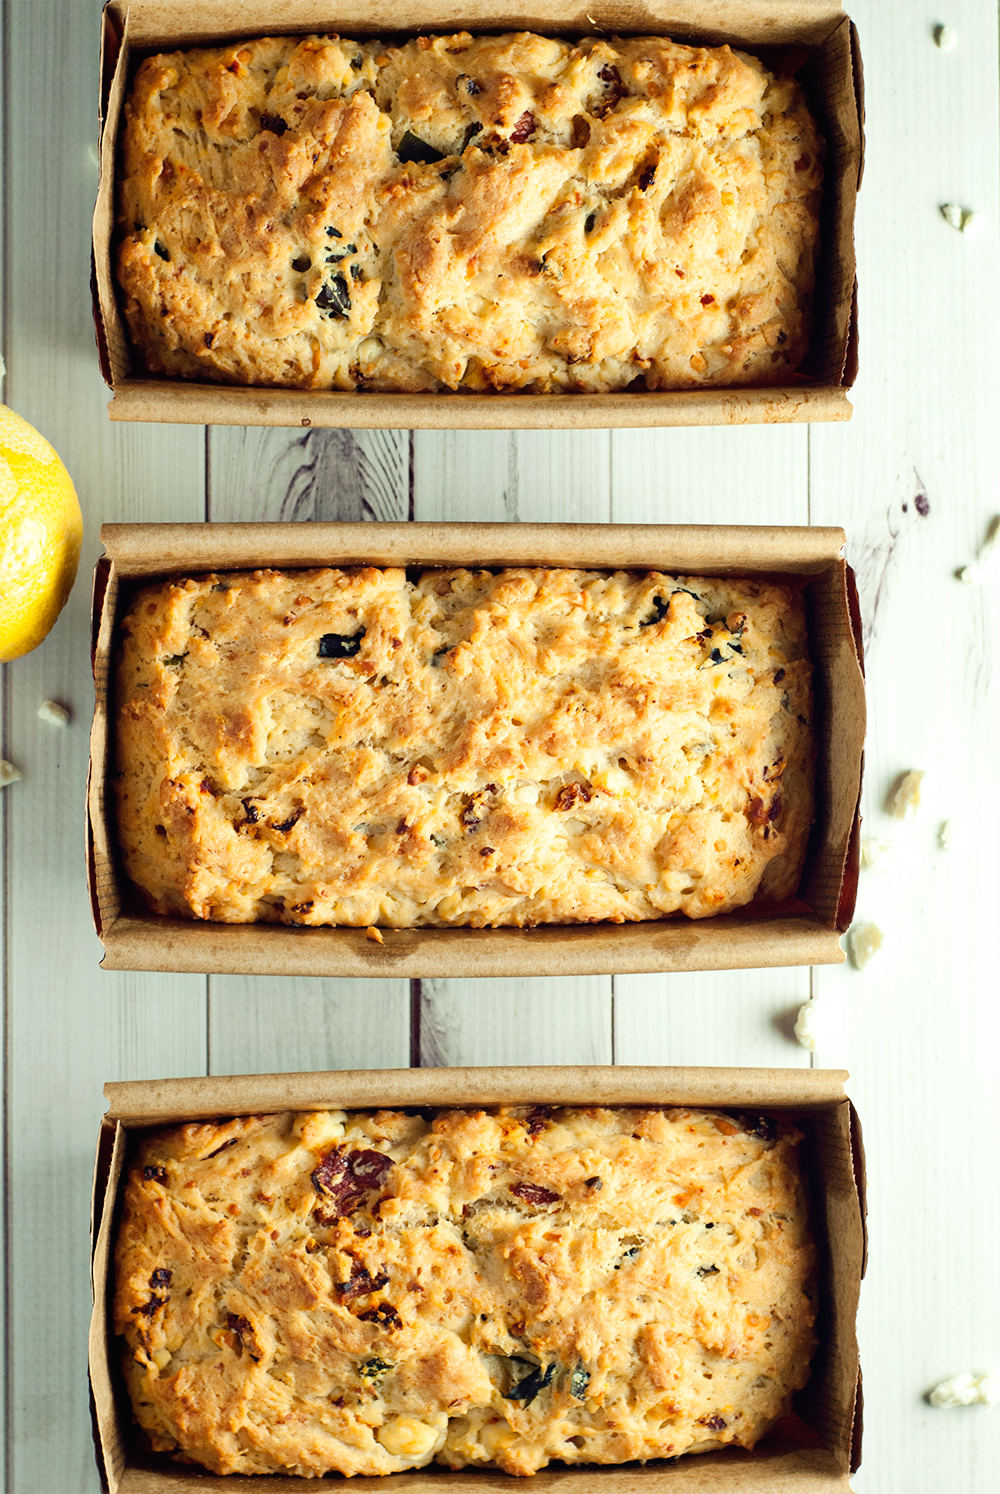 This easy sun-dried tomato and feta quick bread is ready in just 30 minutes, so get ready to nosh on some amazing flavor today!